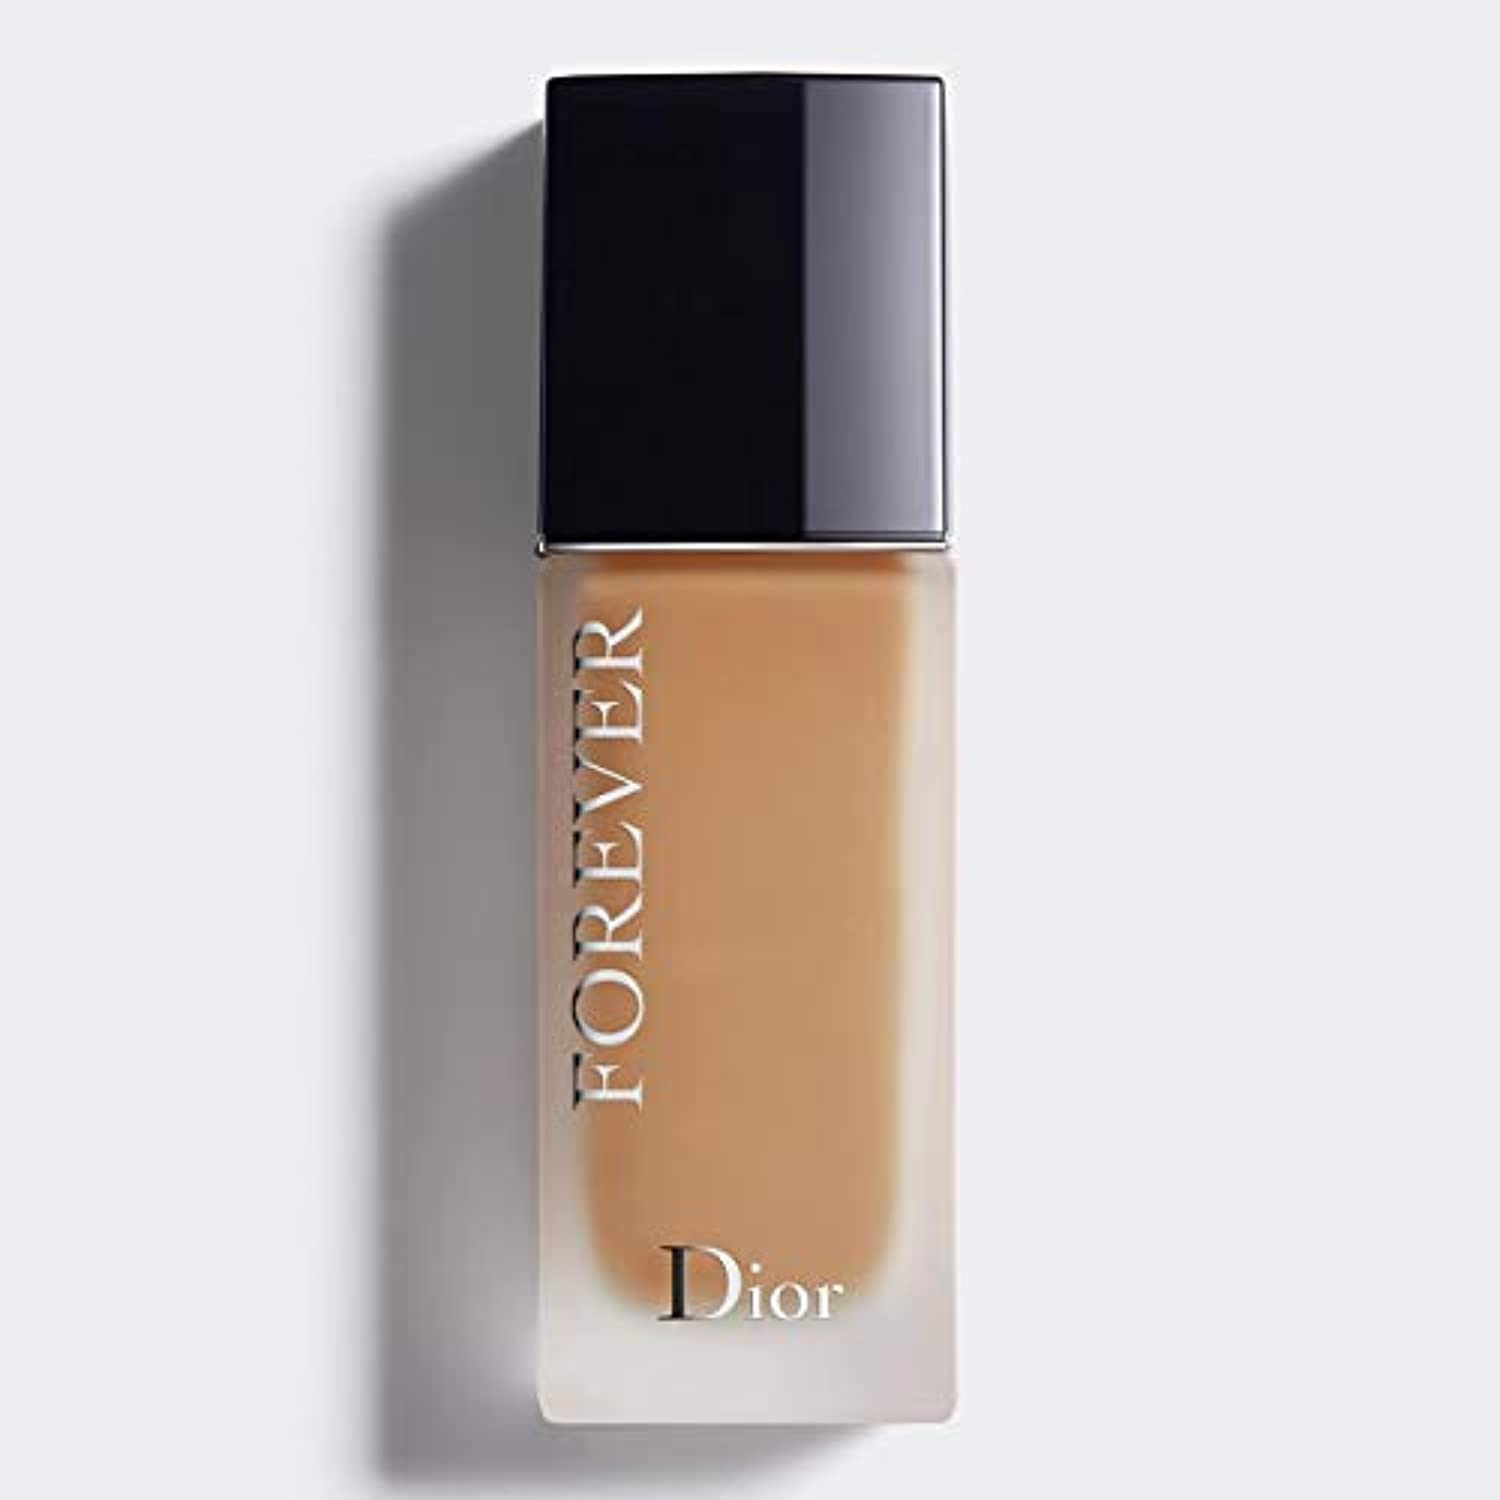 クリスチャンディオール Dior Forever 24H Wear High Perfection Foundation SPF 35 - # 4W (Warm) 30ml/1oz並行輸入品